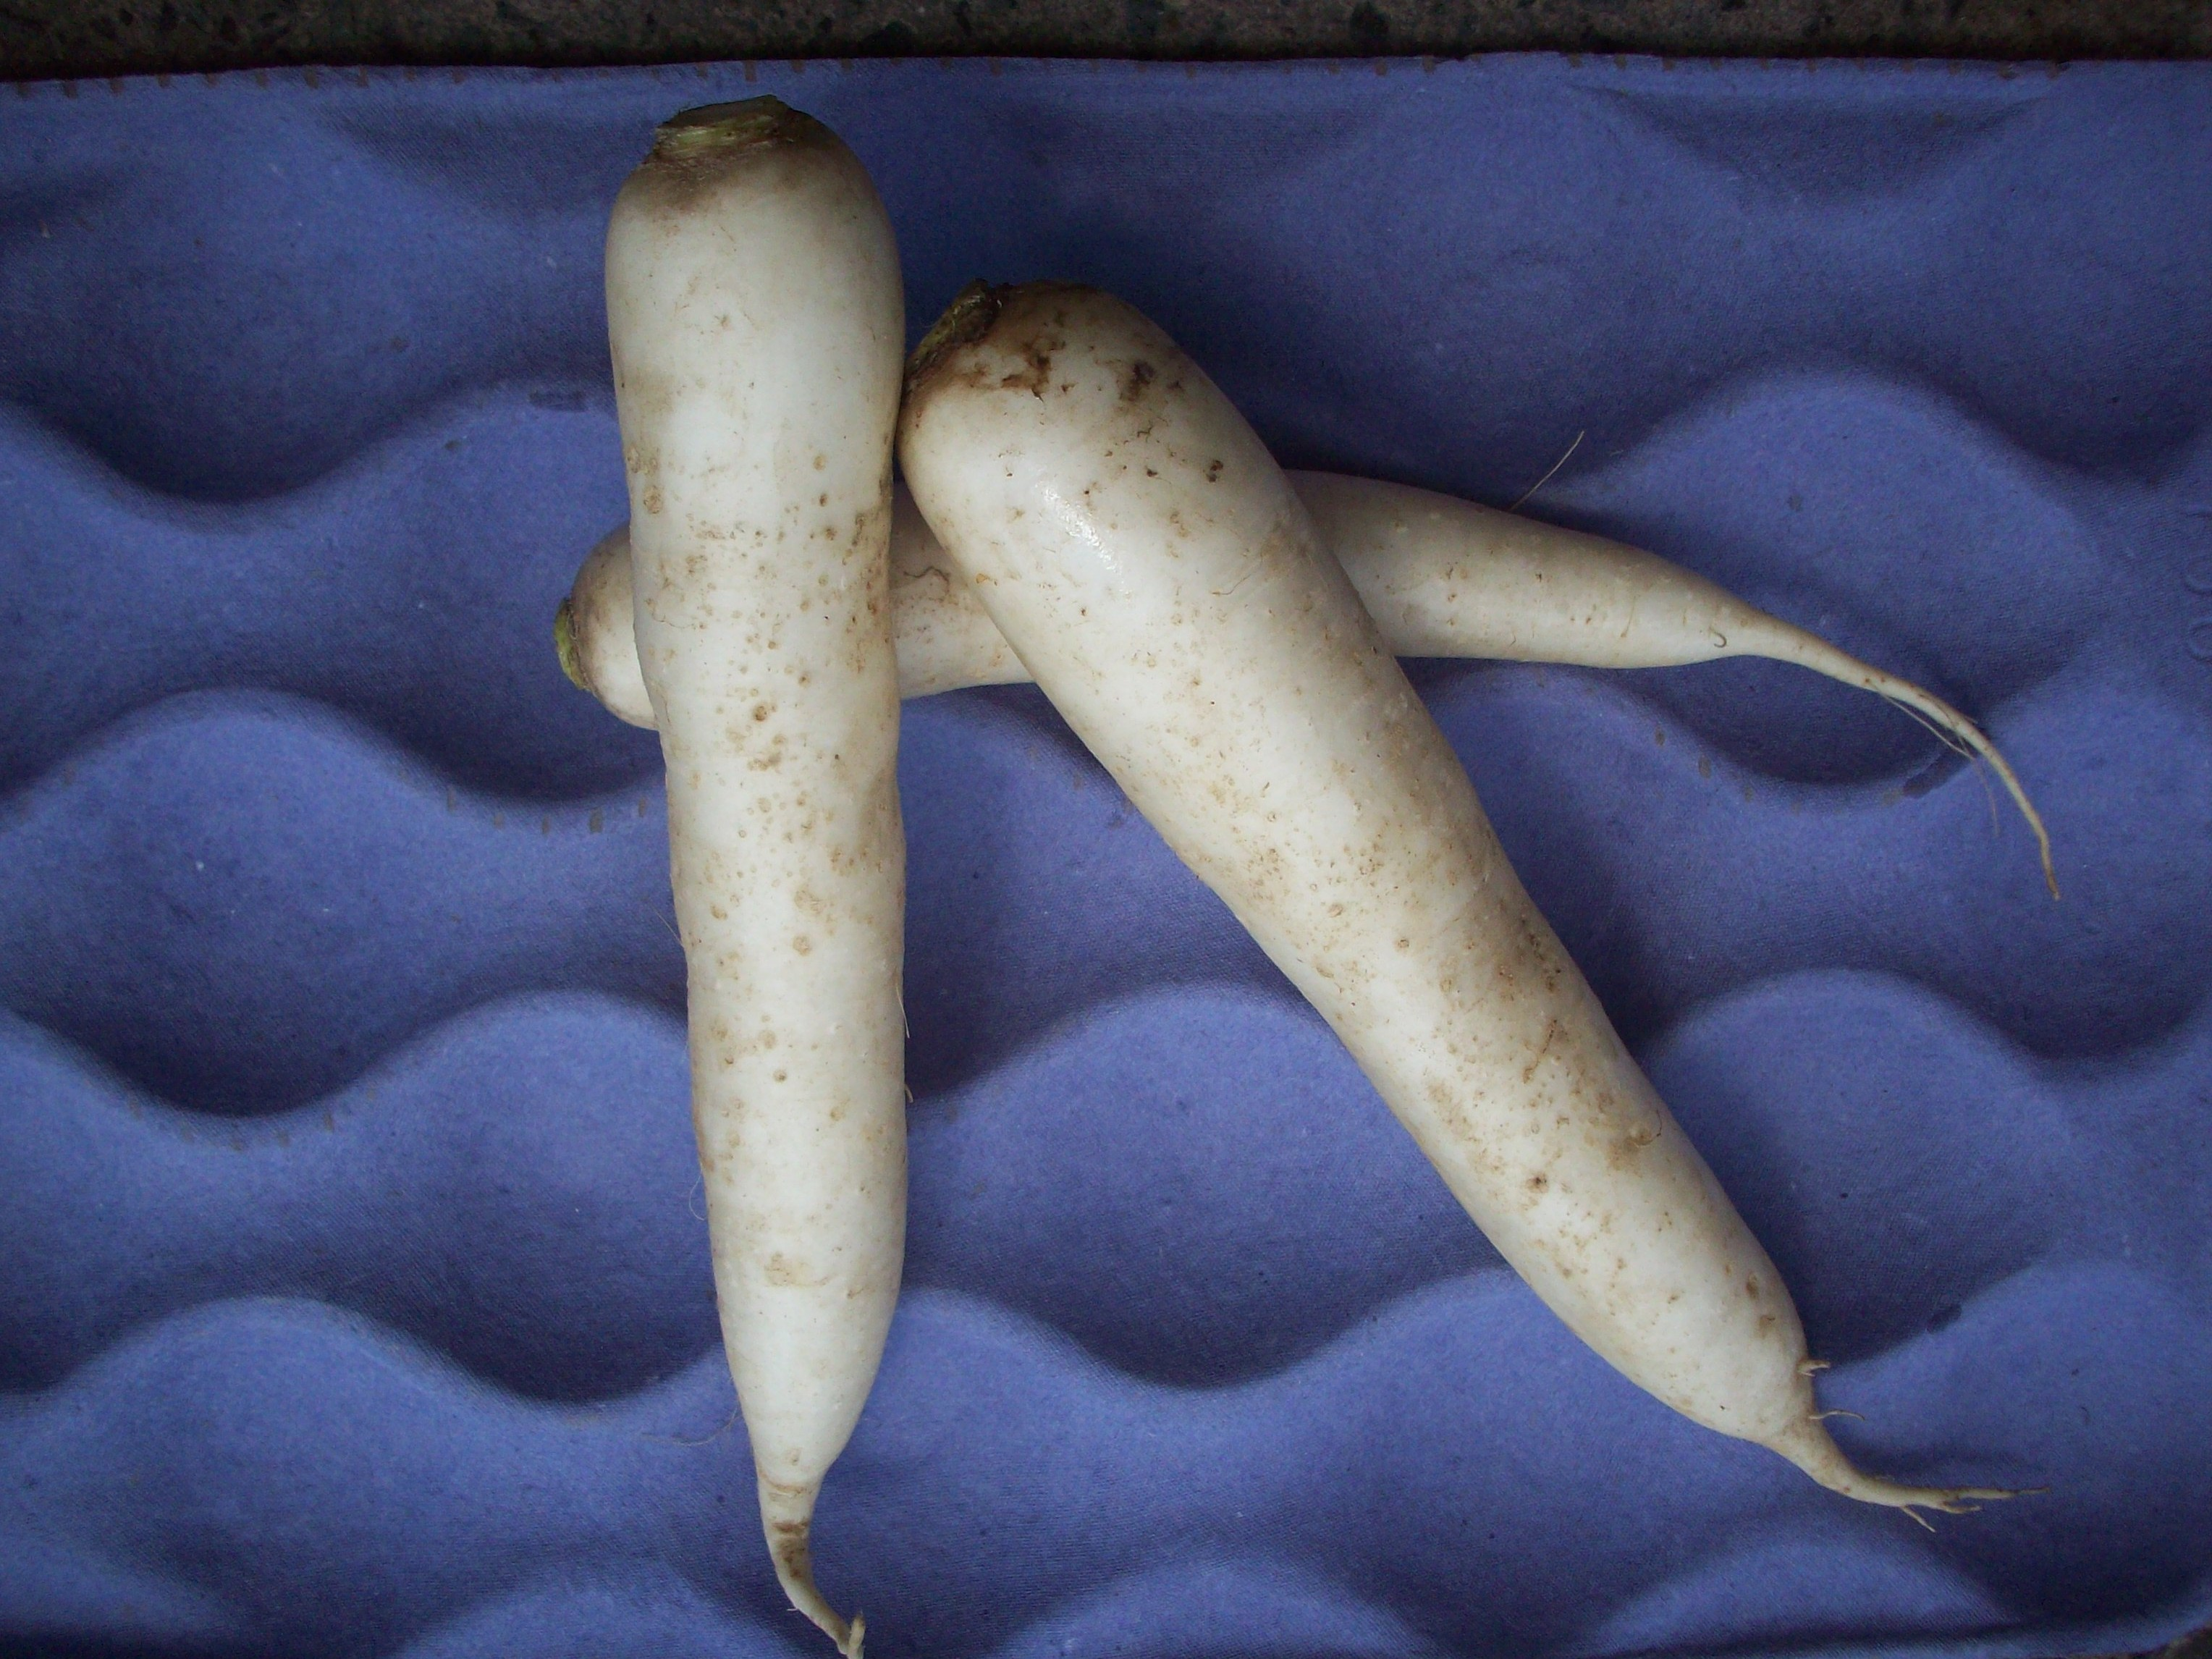 Daikon Radish - An Introspection